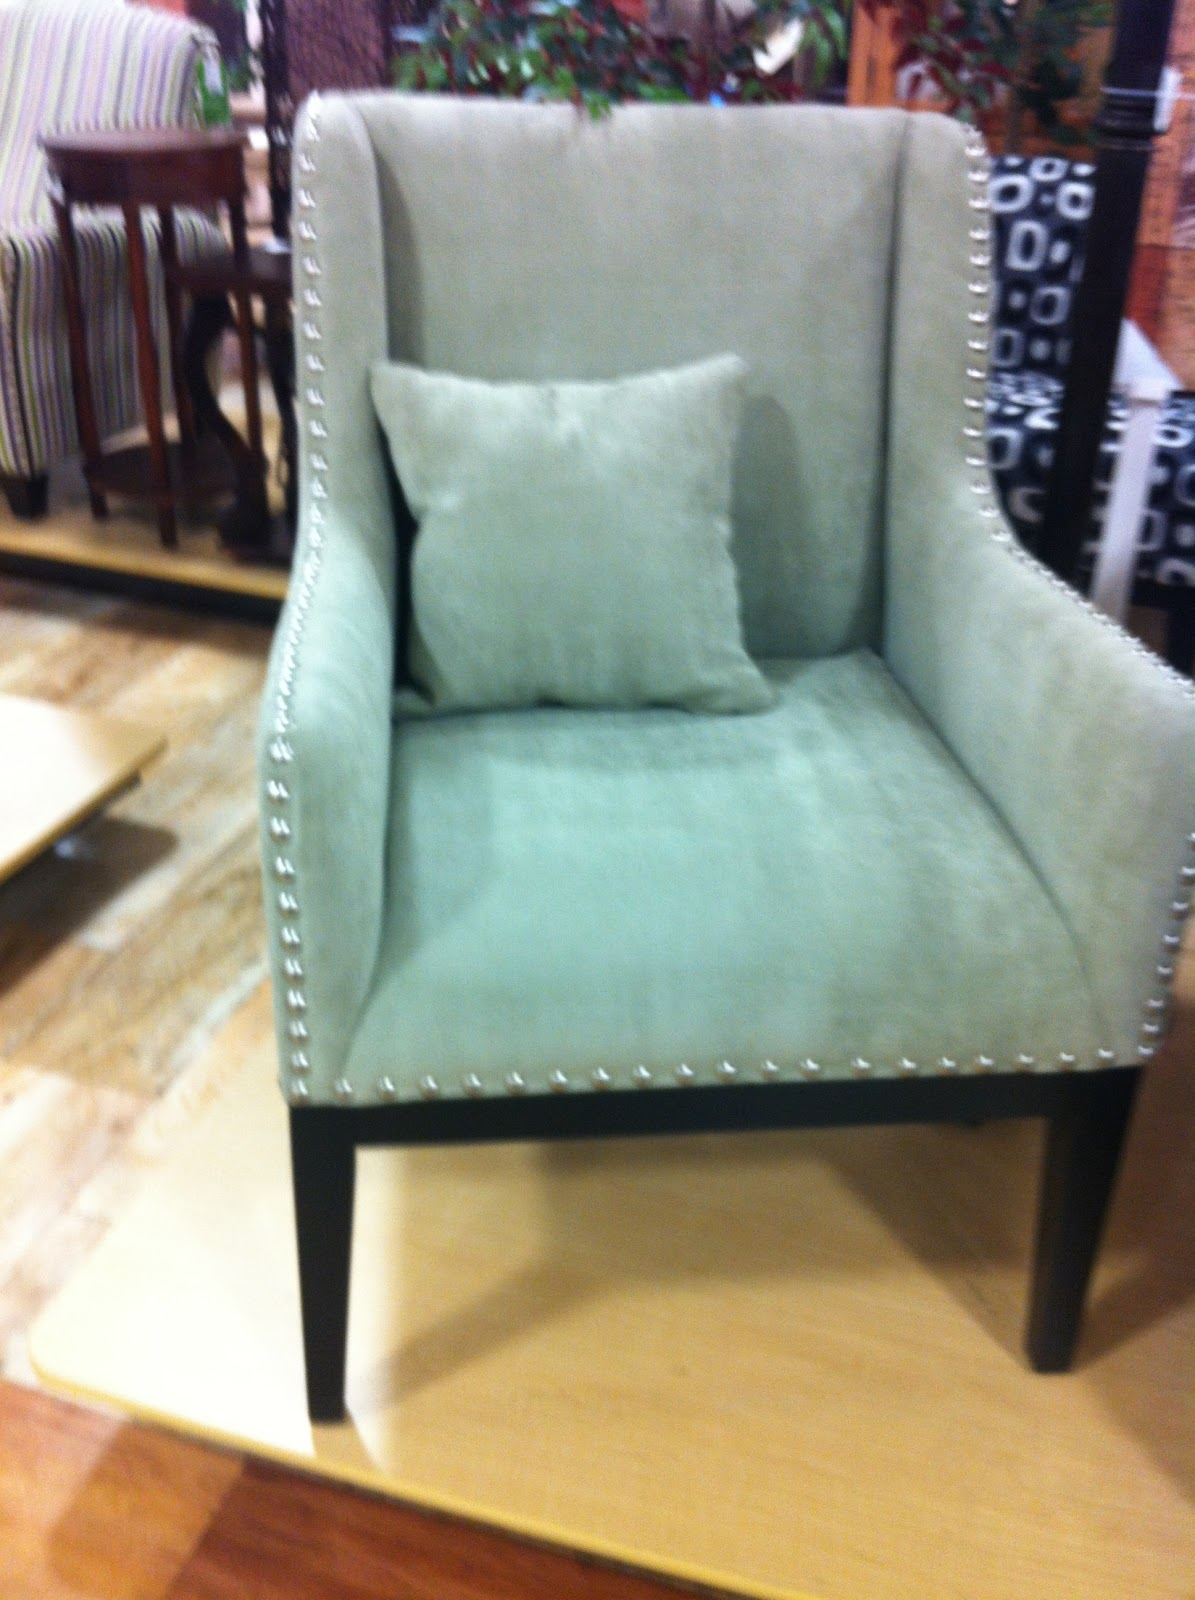 Chairs At Homegoods Chair Cover Hire Dundee A Lovely Little Life I Heart You